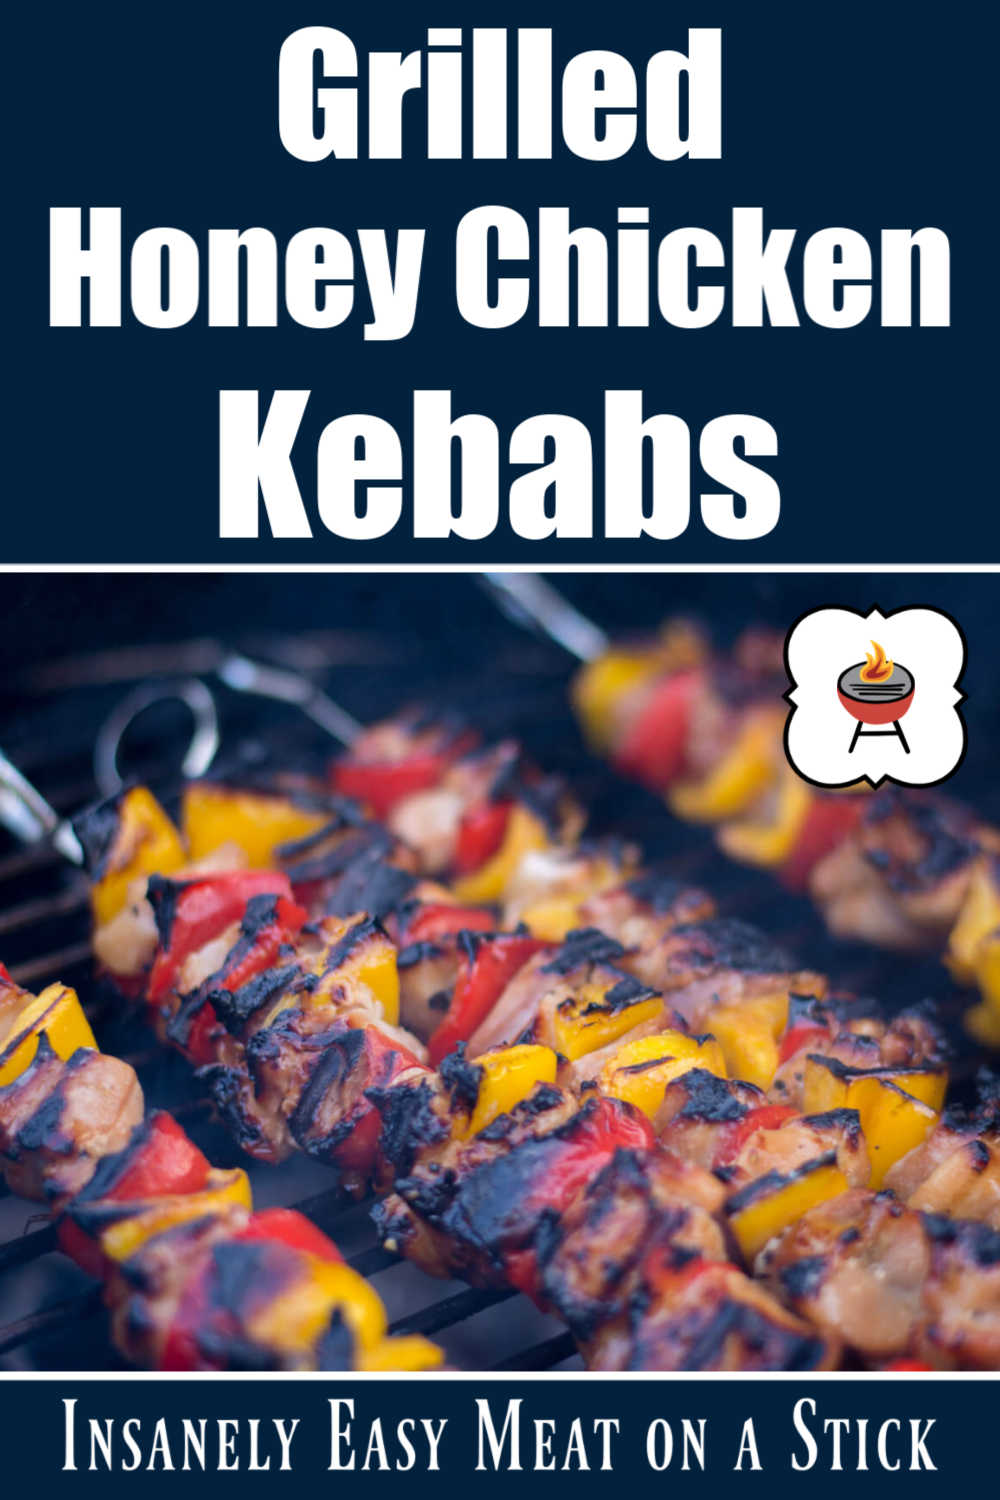 Grilled Honey Chicken Kebabs - Sweet Delicious Marinade